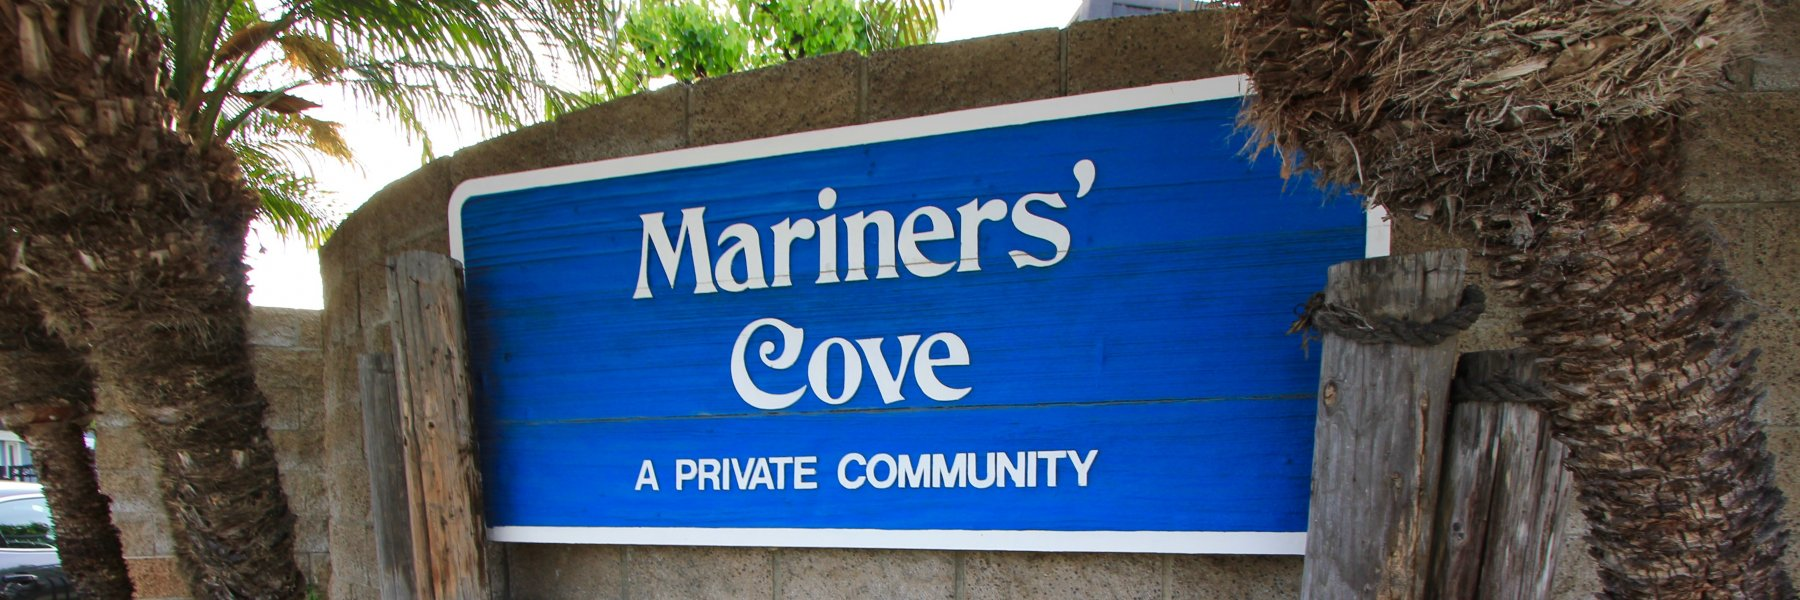 Mariners Cove is a community of homes in Huntington Beach California